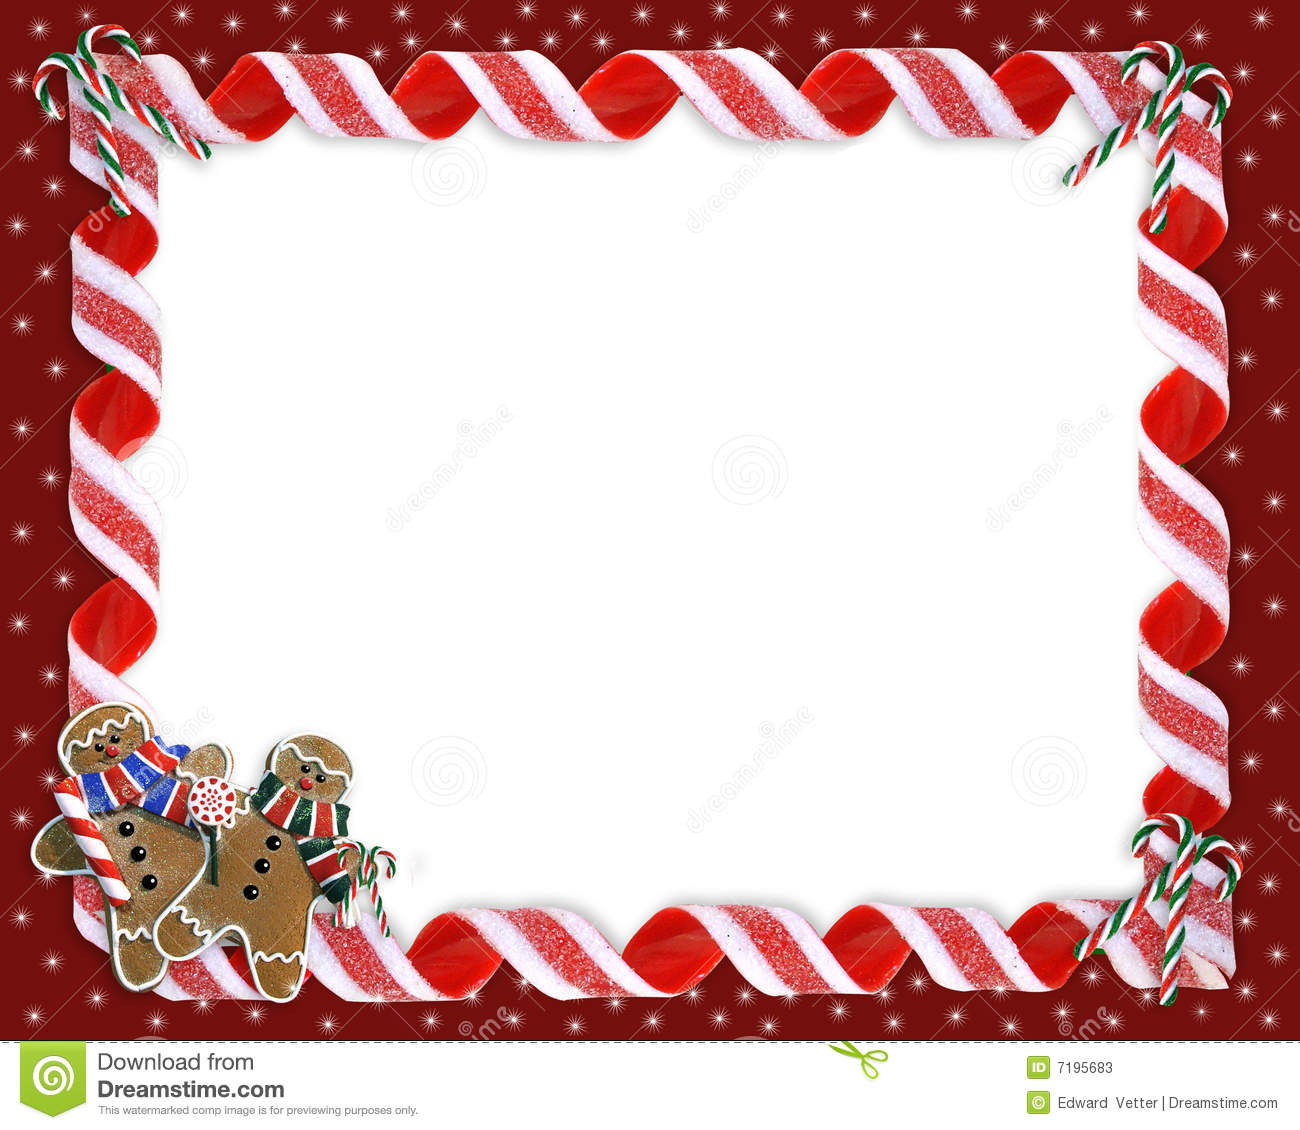 Christmas Holiday Background Border Or Photo Frame With Copy Space